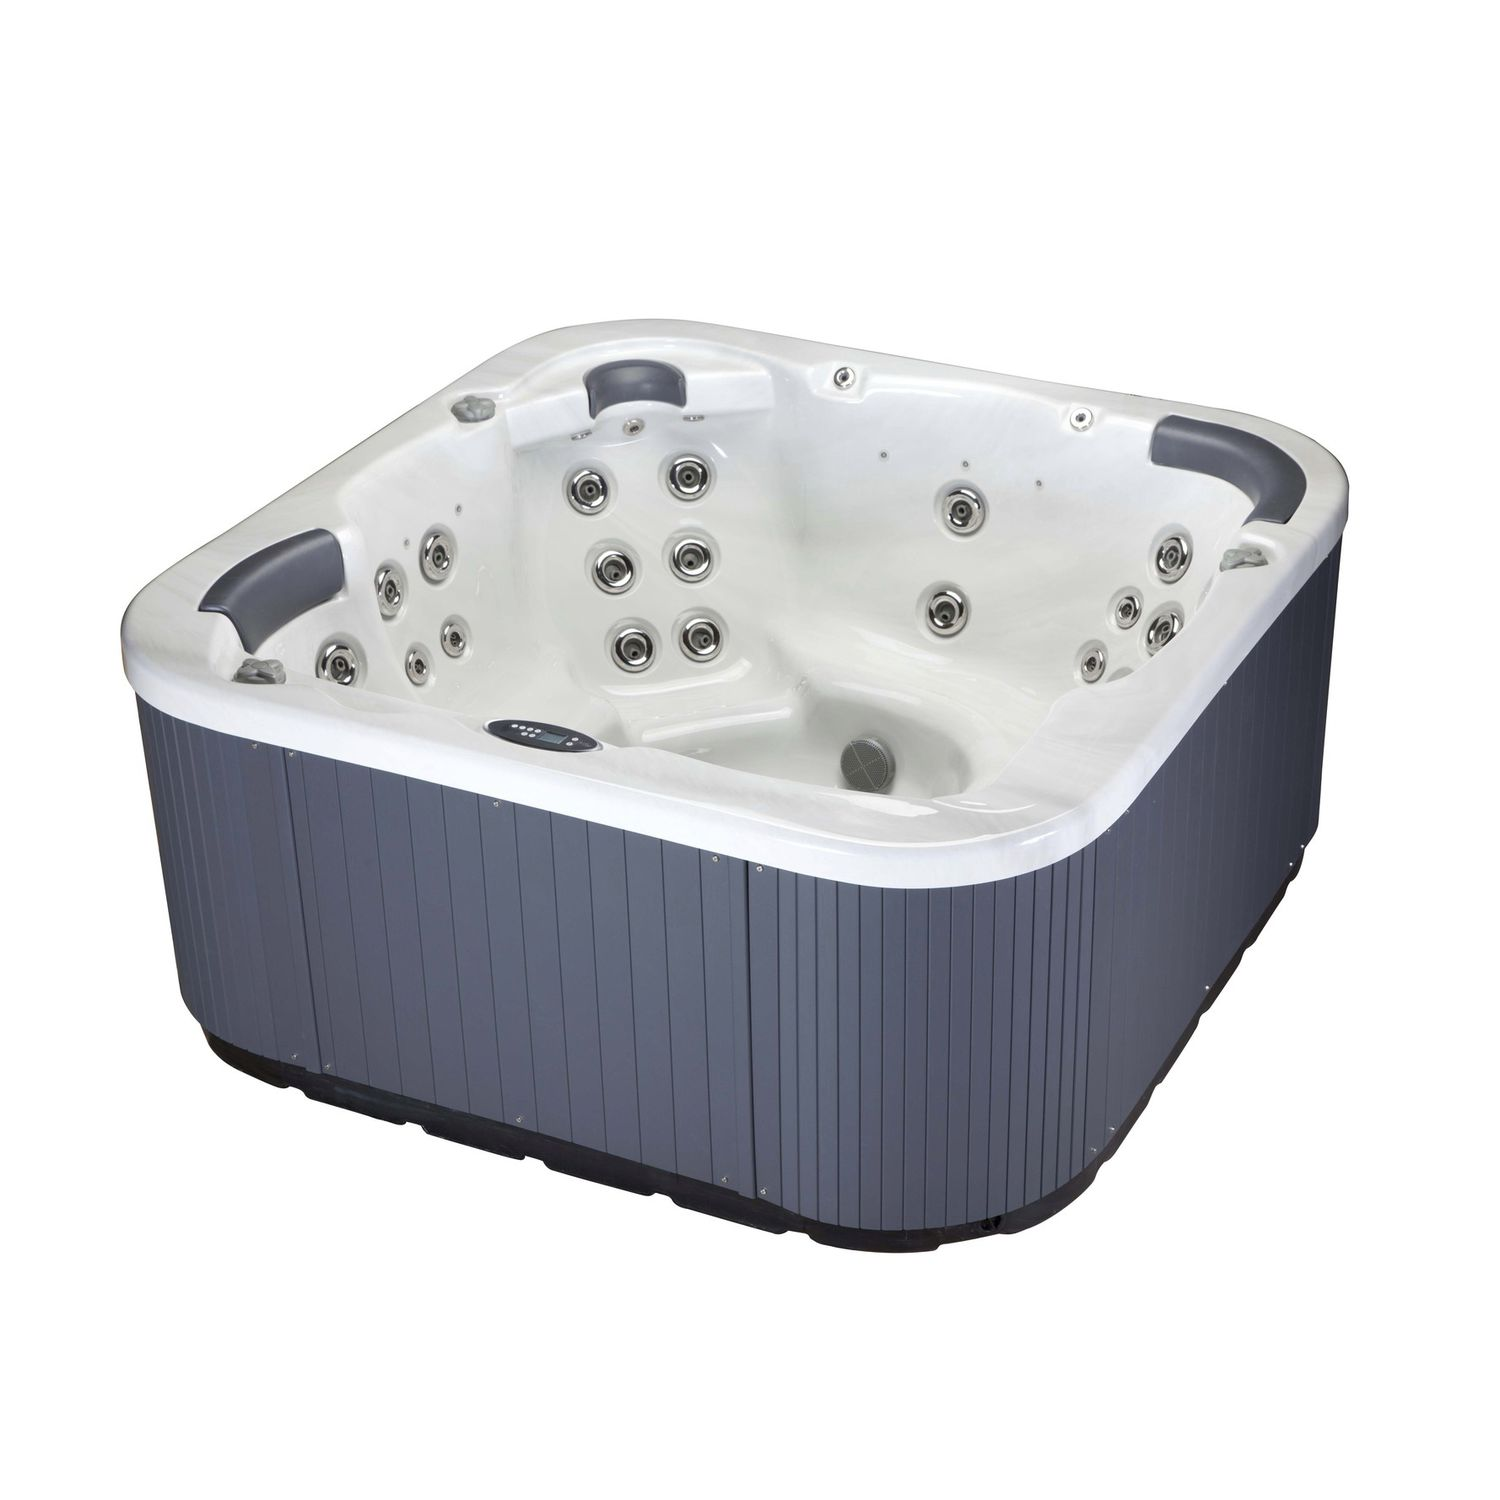 way and images bubble net intex inflatable tub your pool getimage purespa shld shop vm person s url set hot